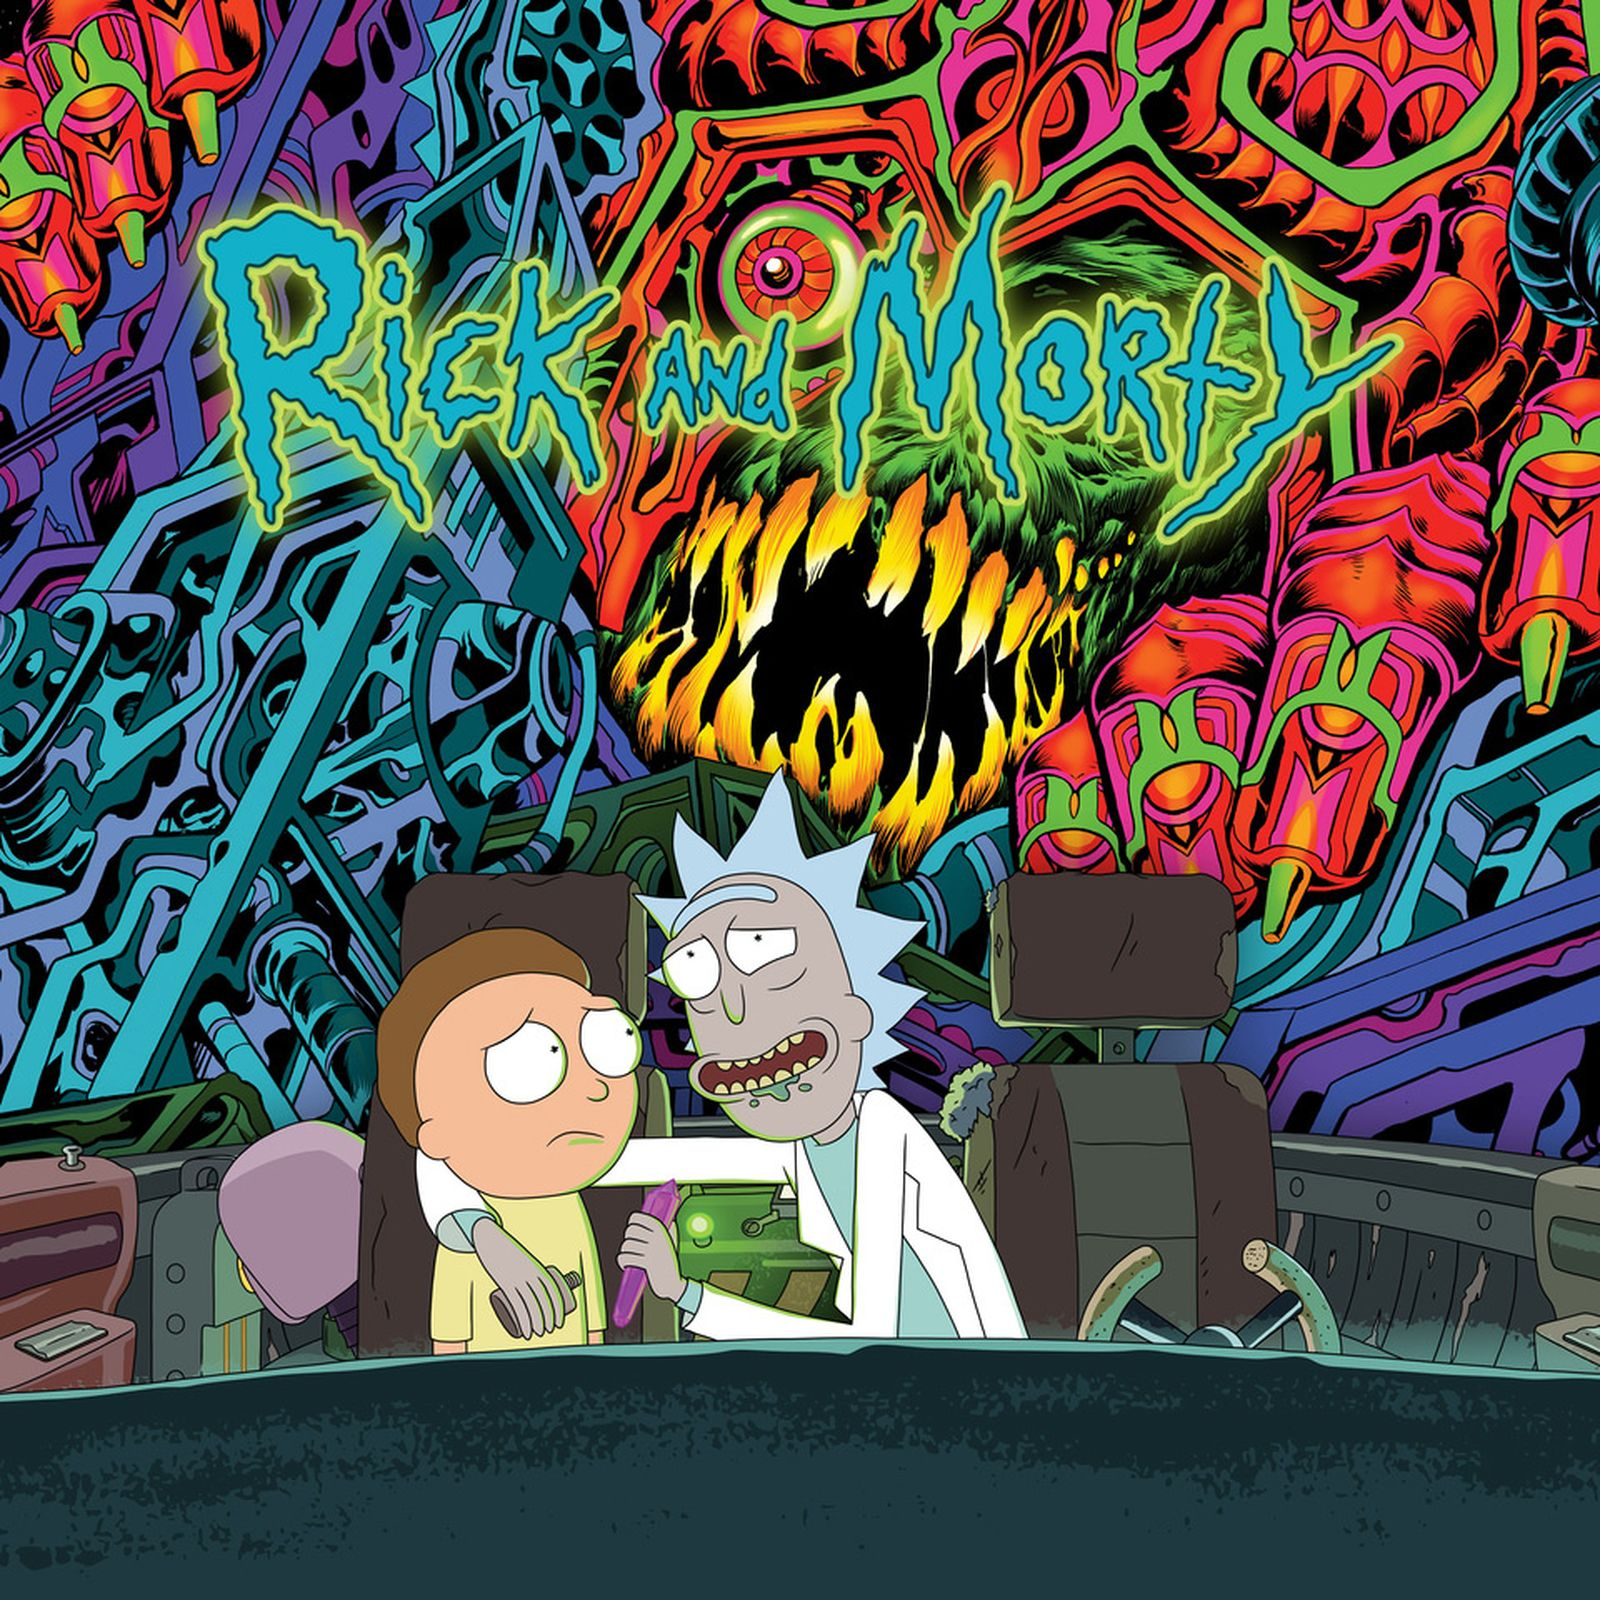 rick and morty soundtrack album sub pop